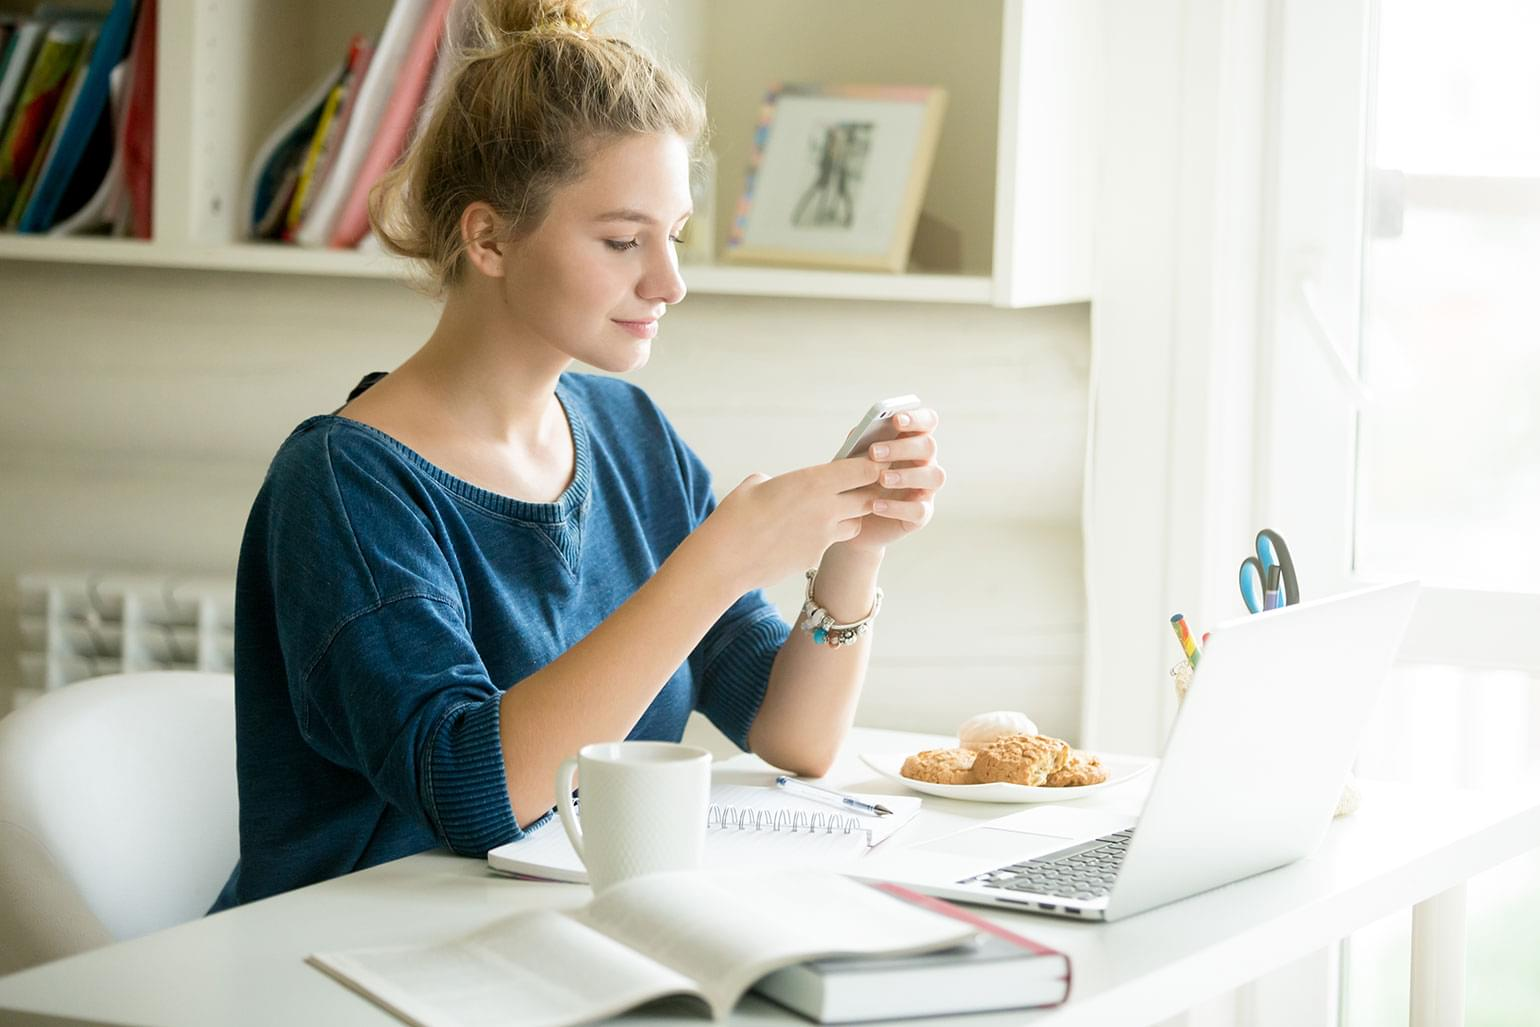 Portrait of young beautiful casual woman holding smartphone, looking at screen, using app or messaging while sitting at modern workplace with laptop, books, coffee and cookies in home office or dorm.